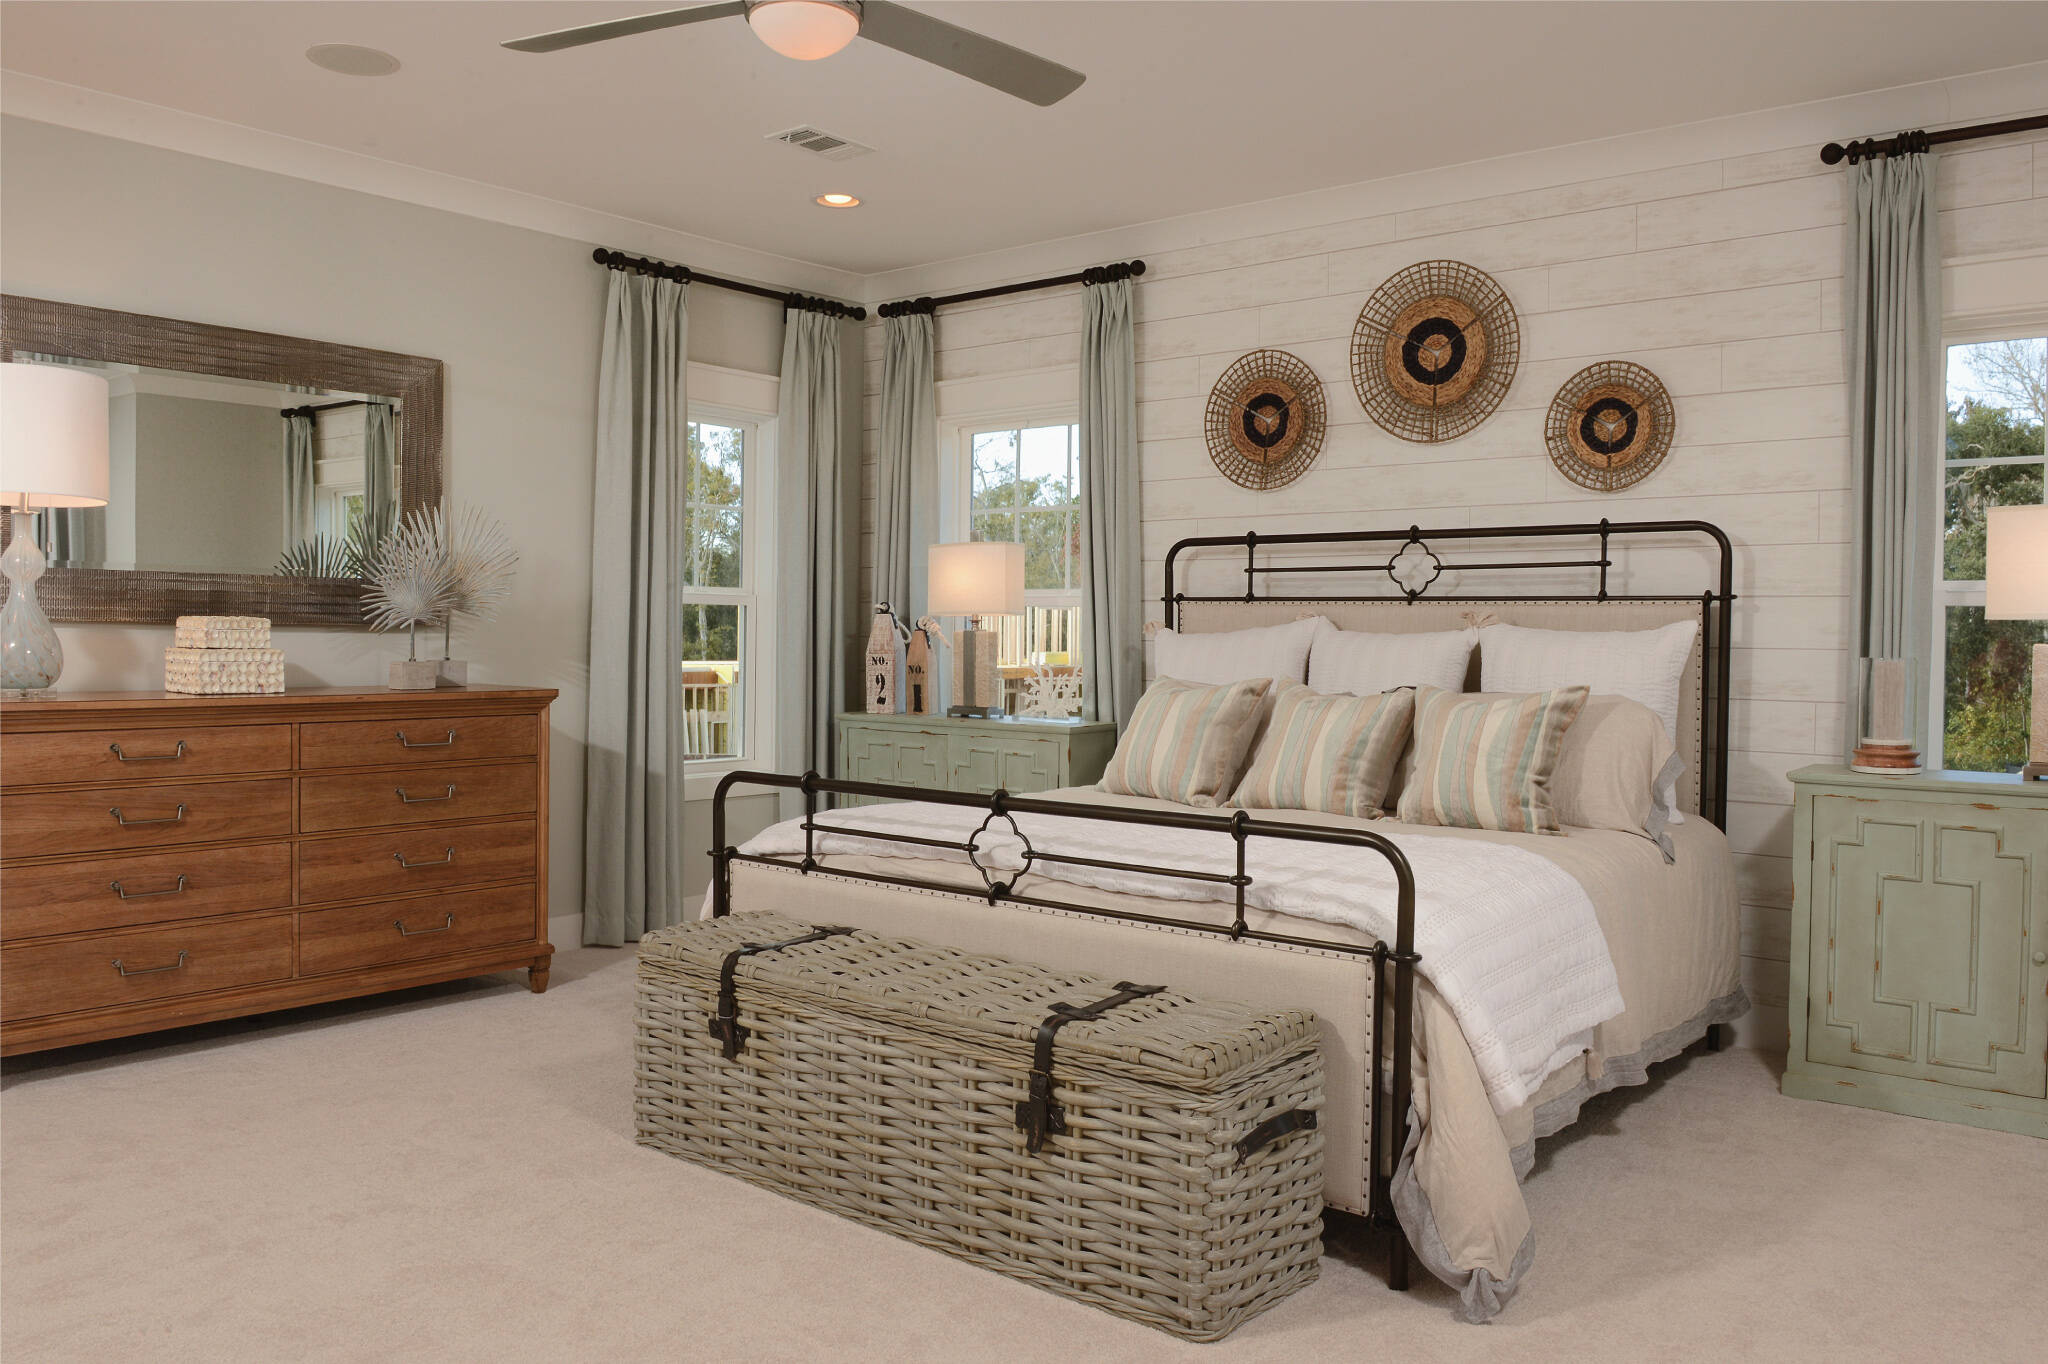 owners suite in surfside at magnolia place new townhomes in hilton head island south carolina